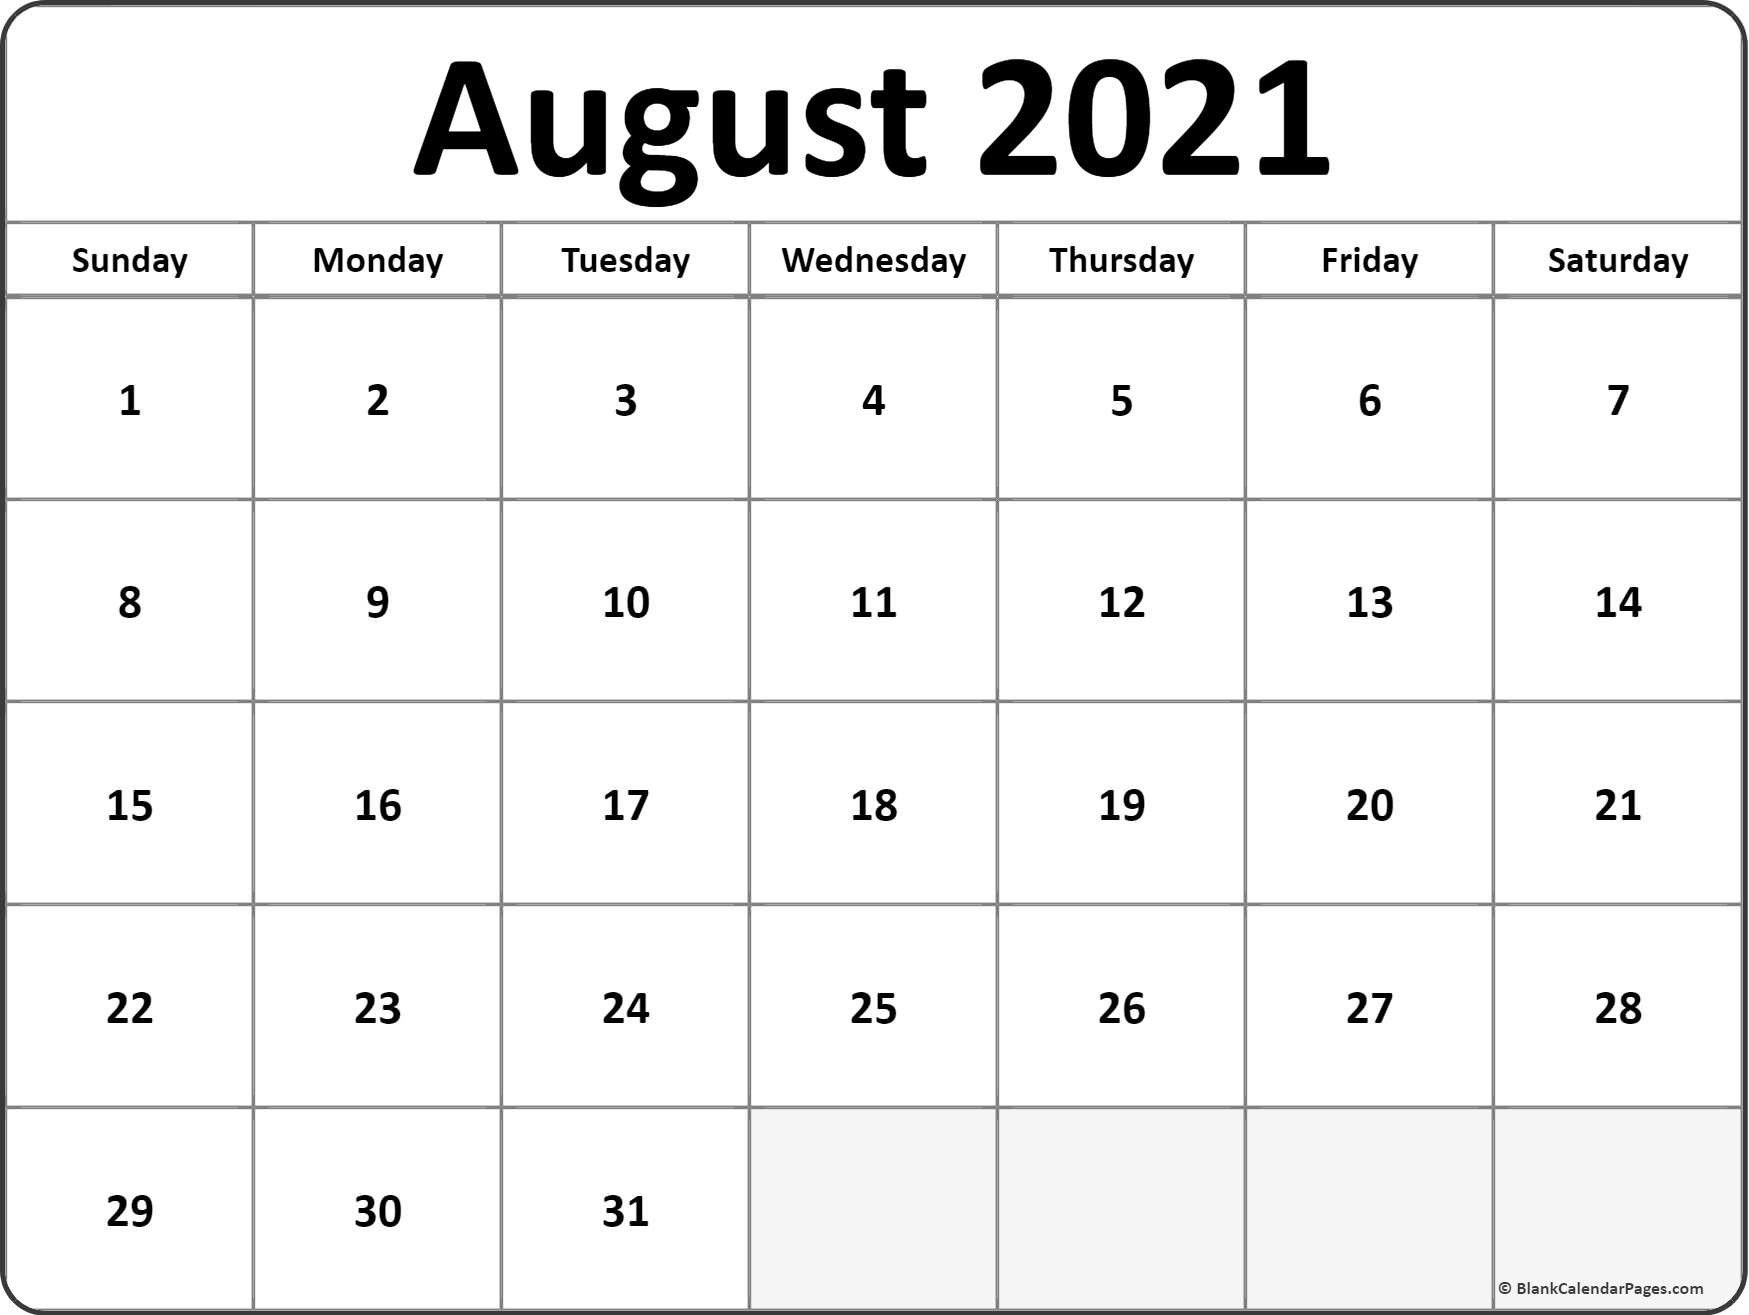 Get August 2021 Calendar To Fill In